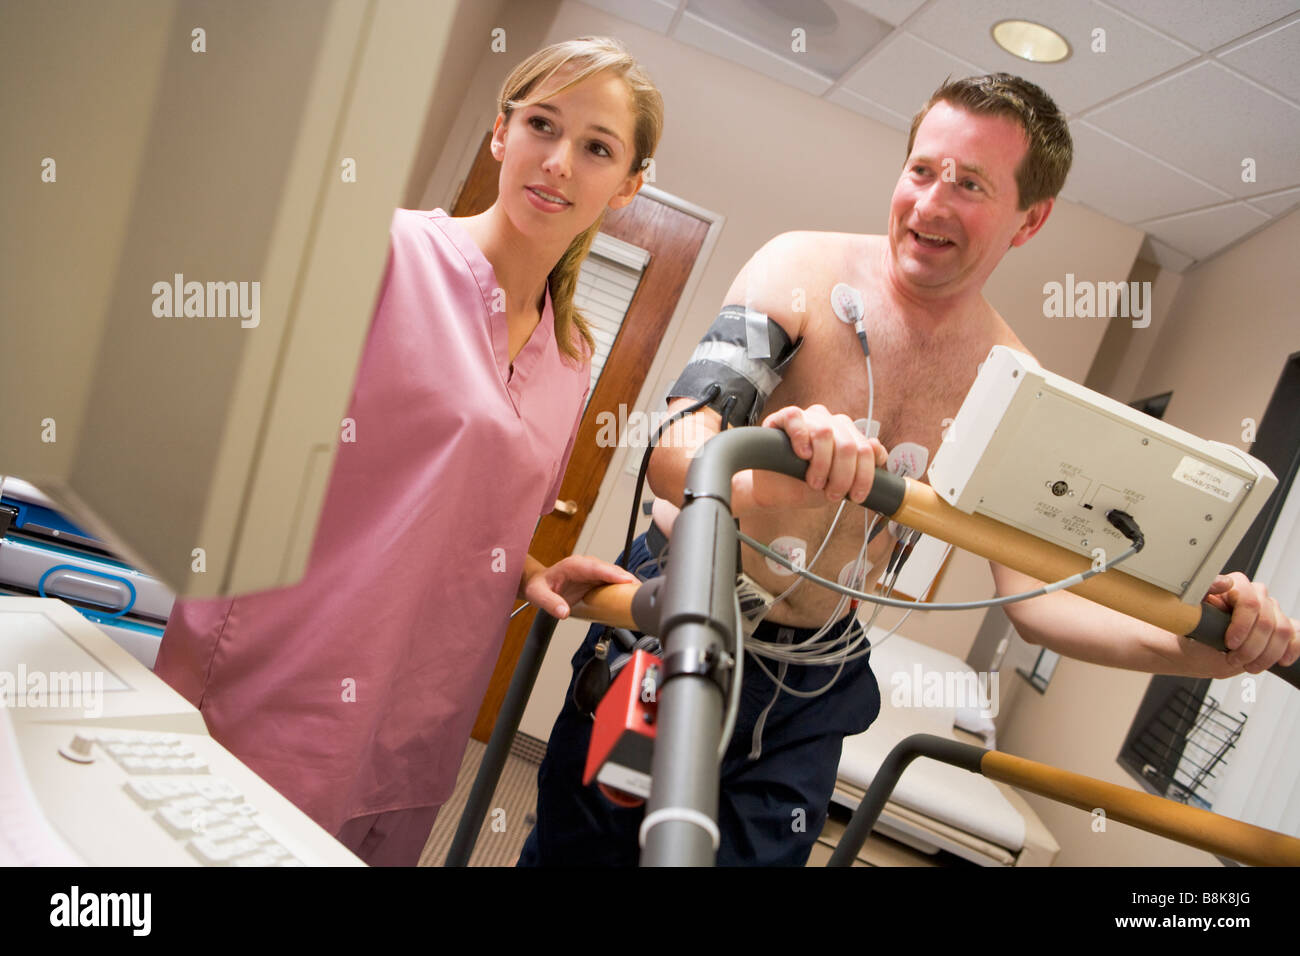 Nurse With Patient During Health Check - Stock Image